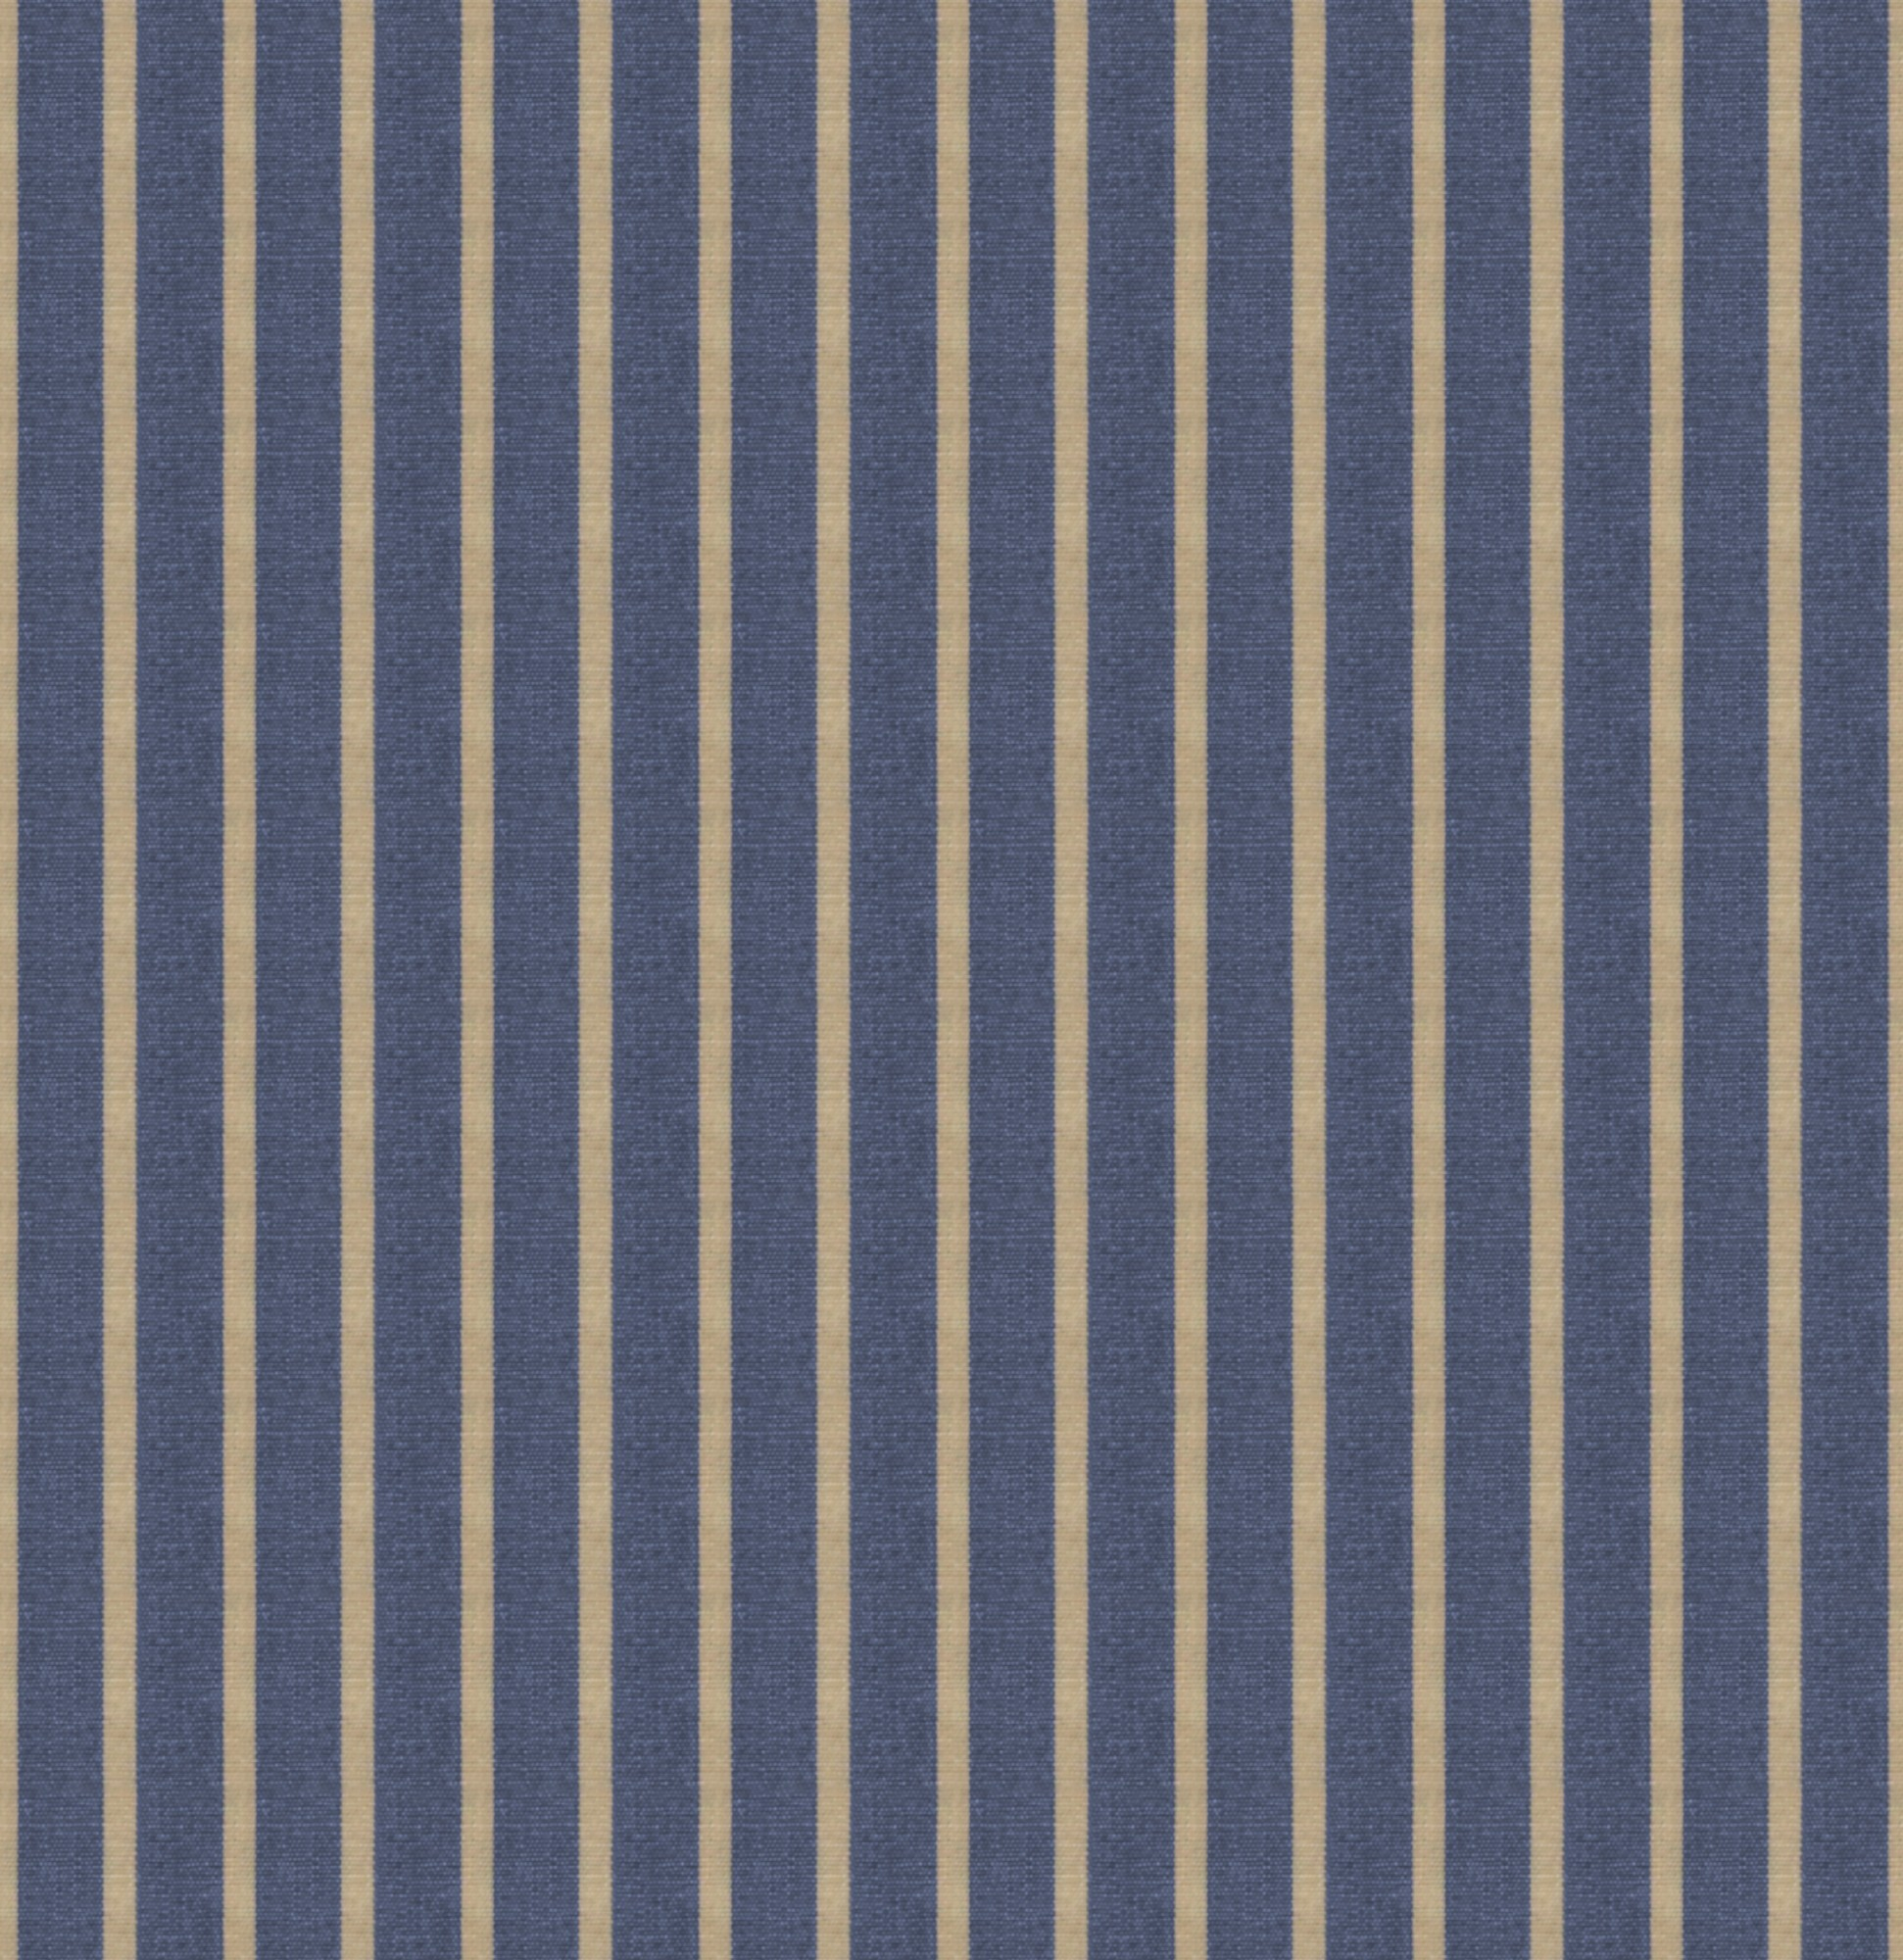 Navy w/ Khaki Stripes